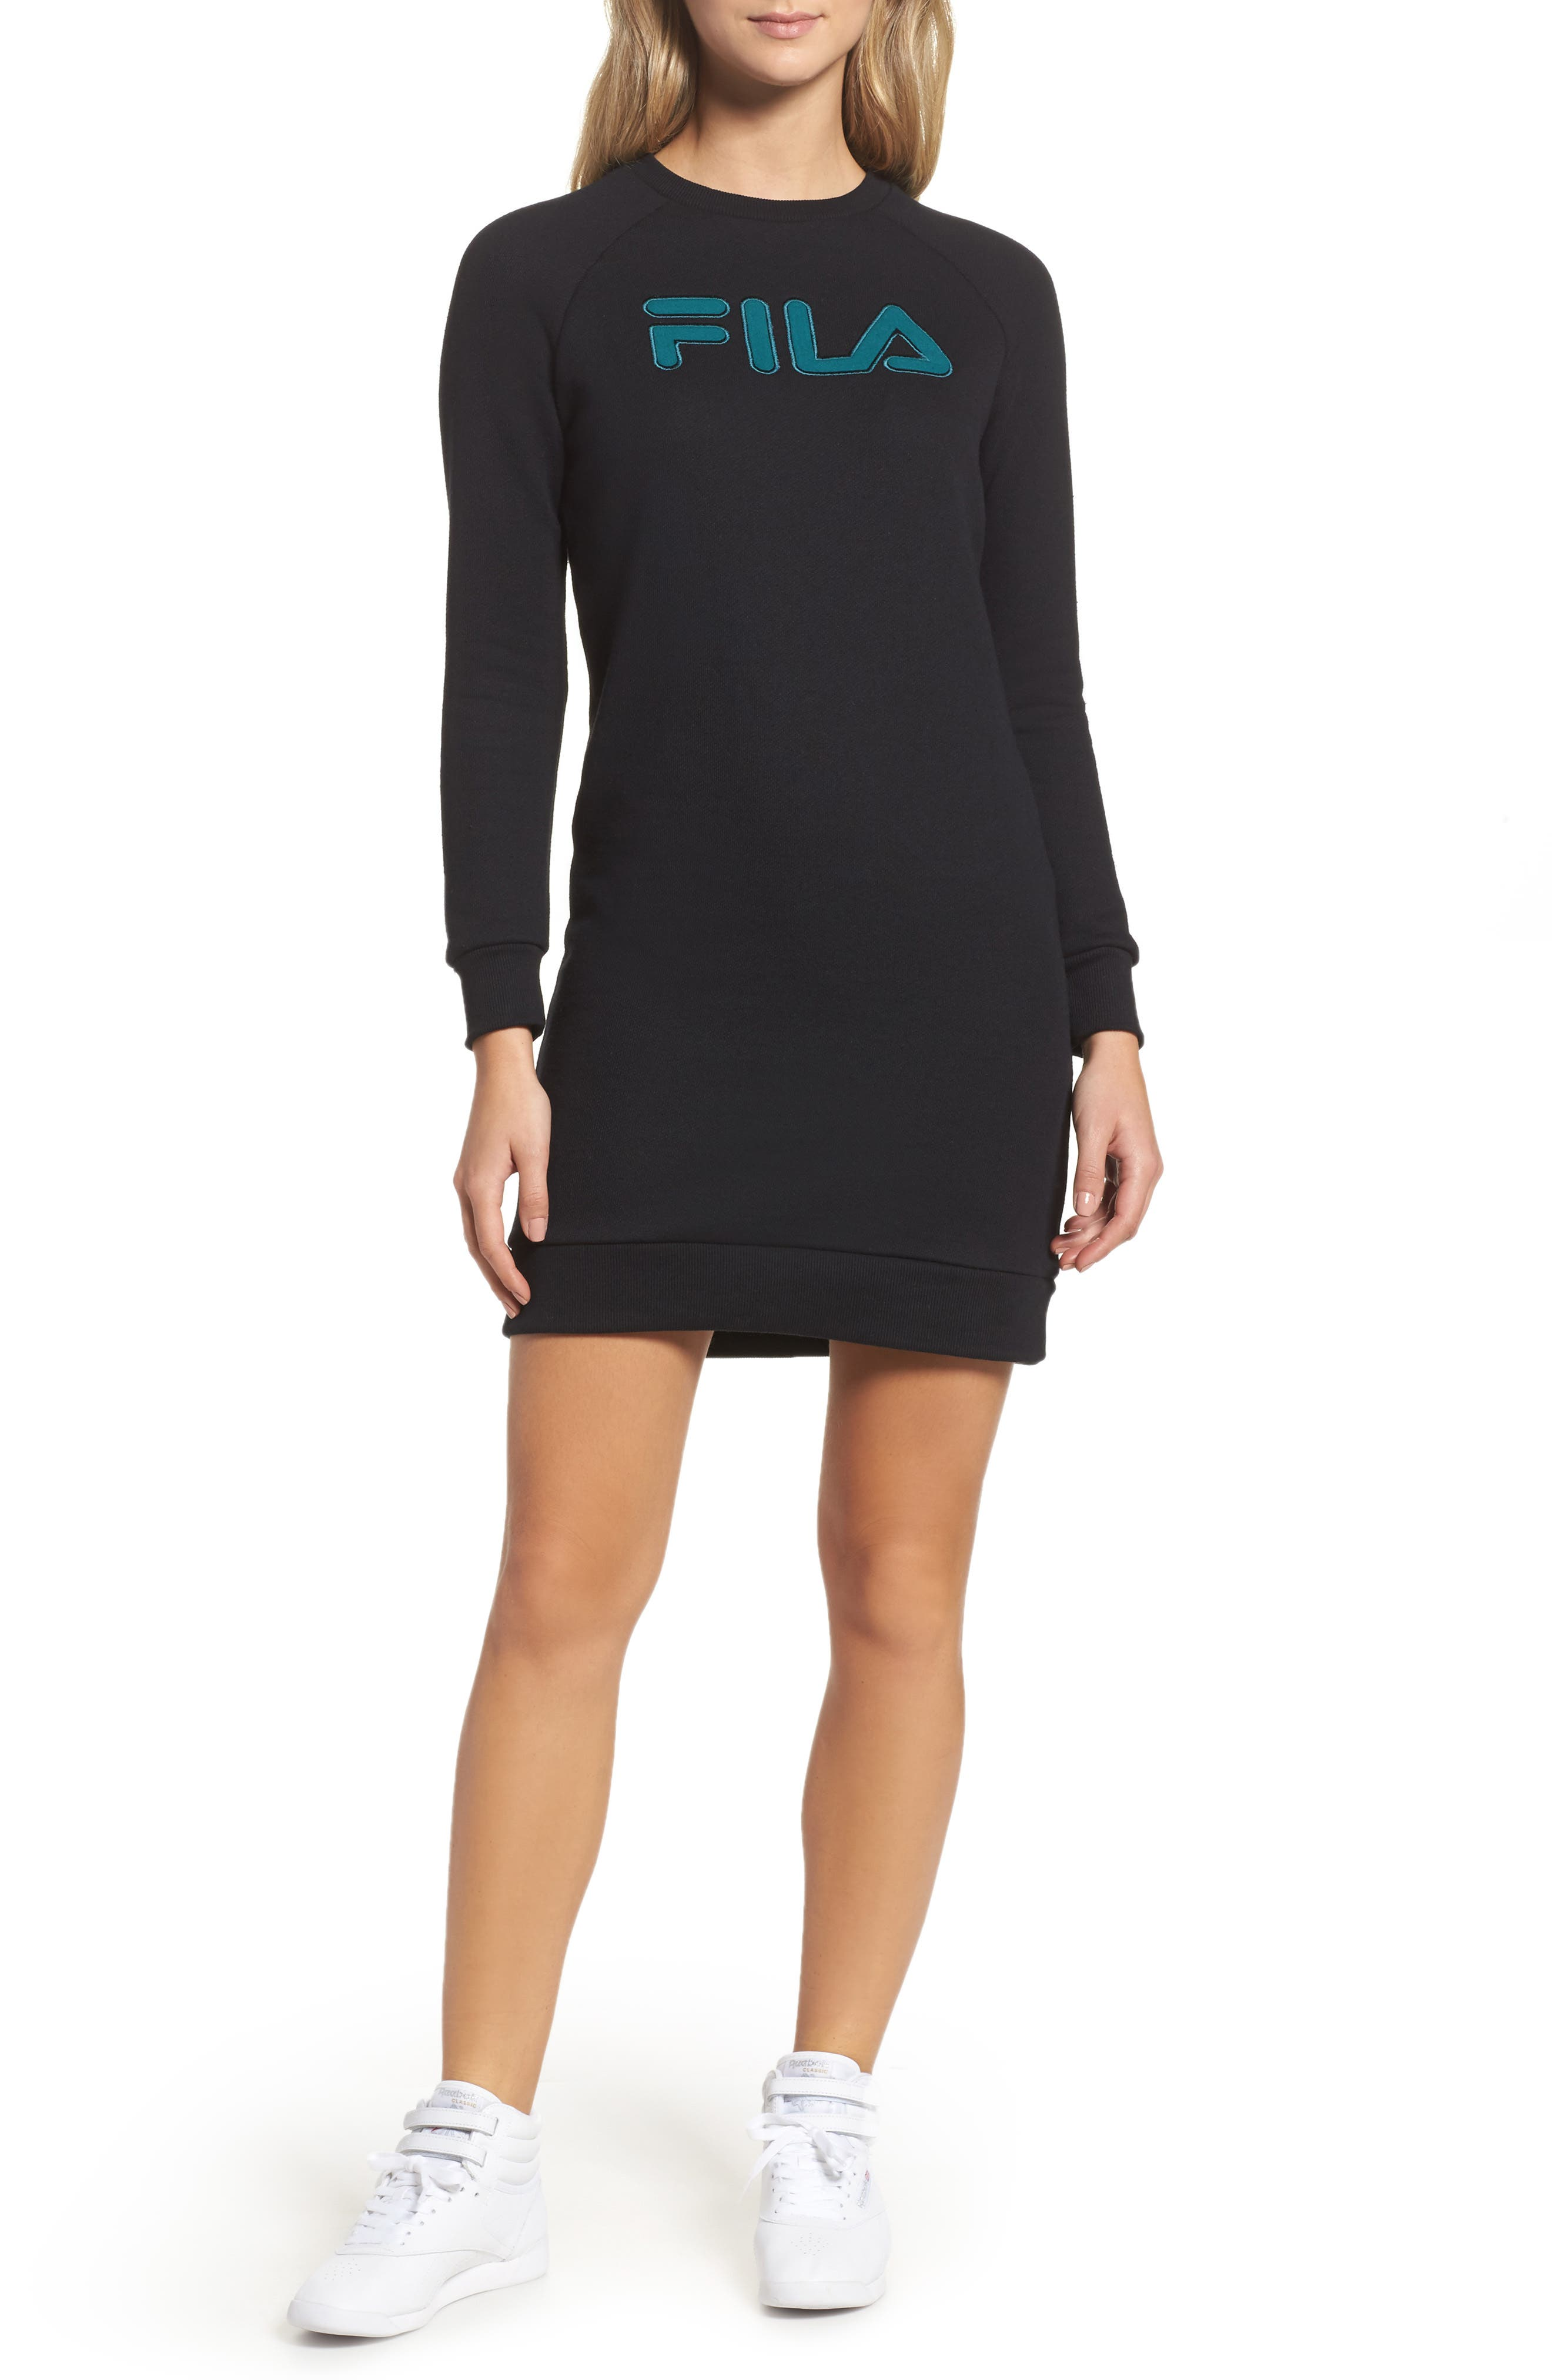 Courtney Sweatshirt Dress,                             Main thumbnail 1, color,                             001